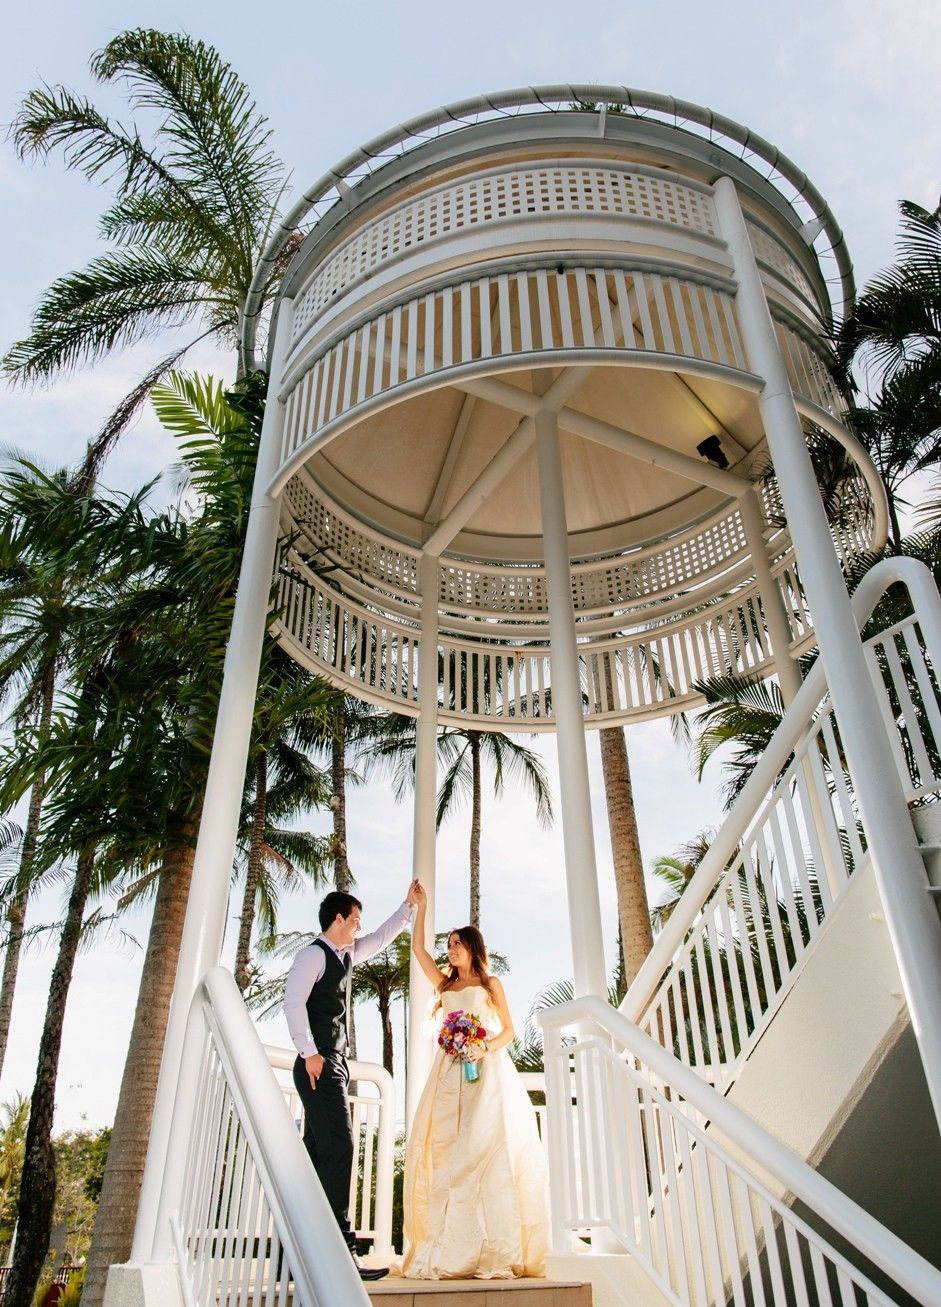 Weddings in tropical North Queensland are guaranteed